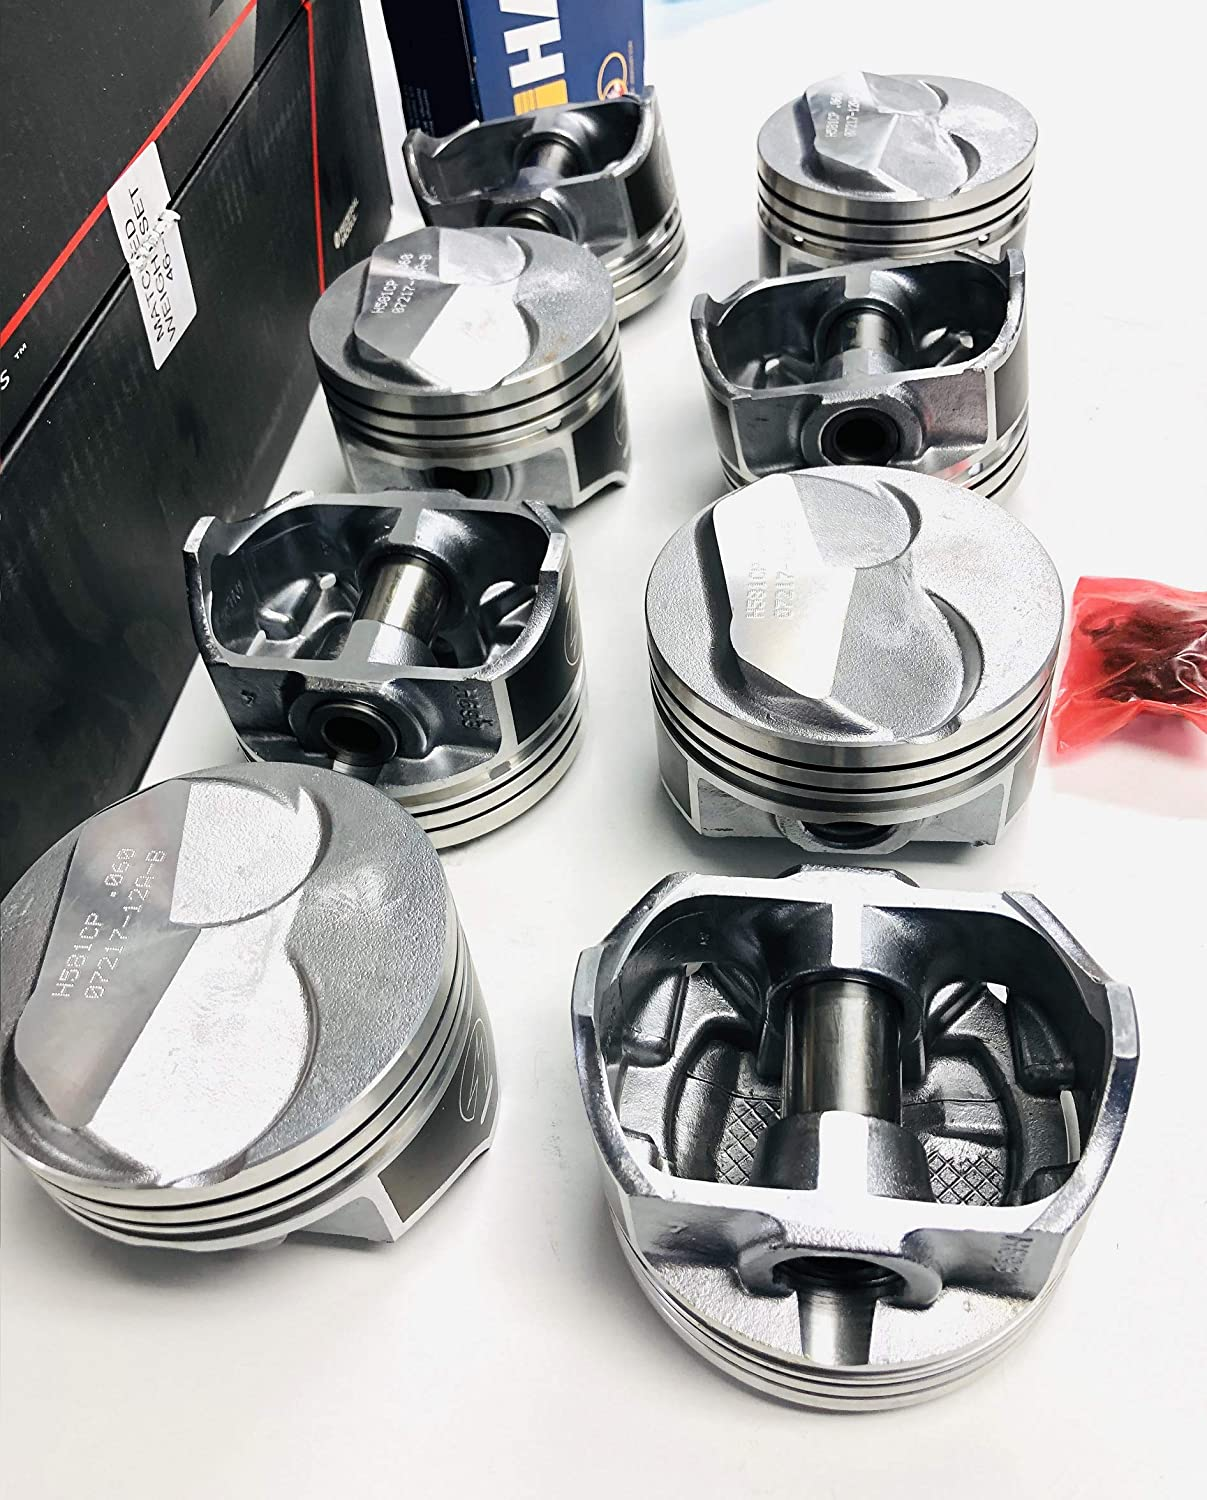 60 Chevy 454 Speed Pro Hypereutectic Flat Top Floater Pistons+MOLY Rings Set